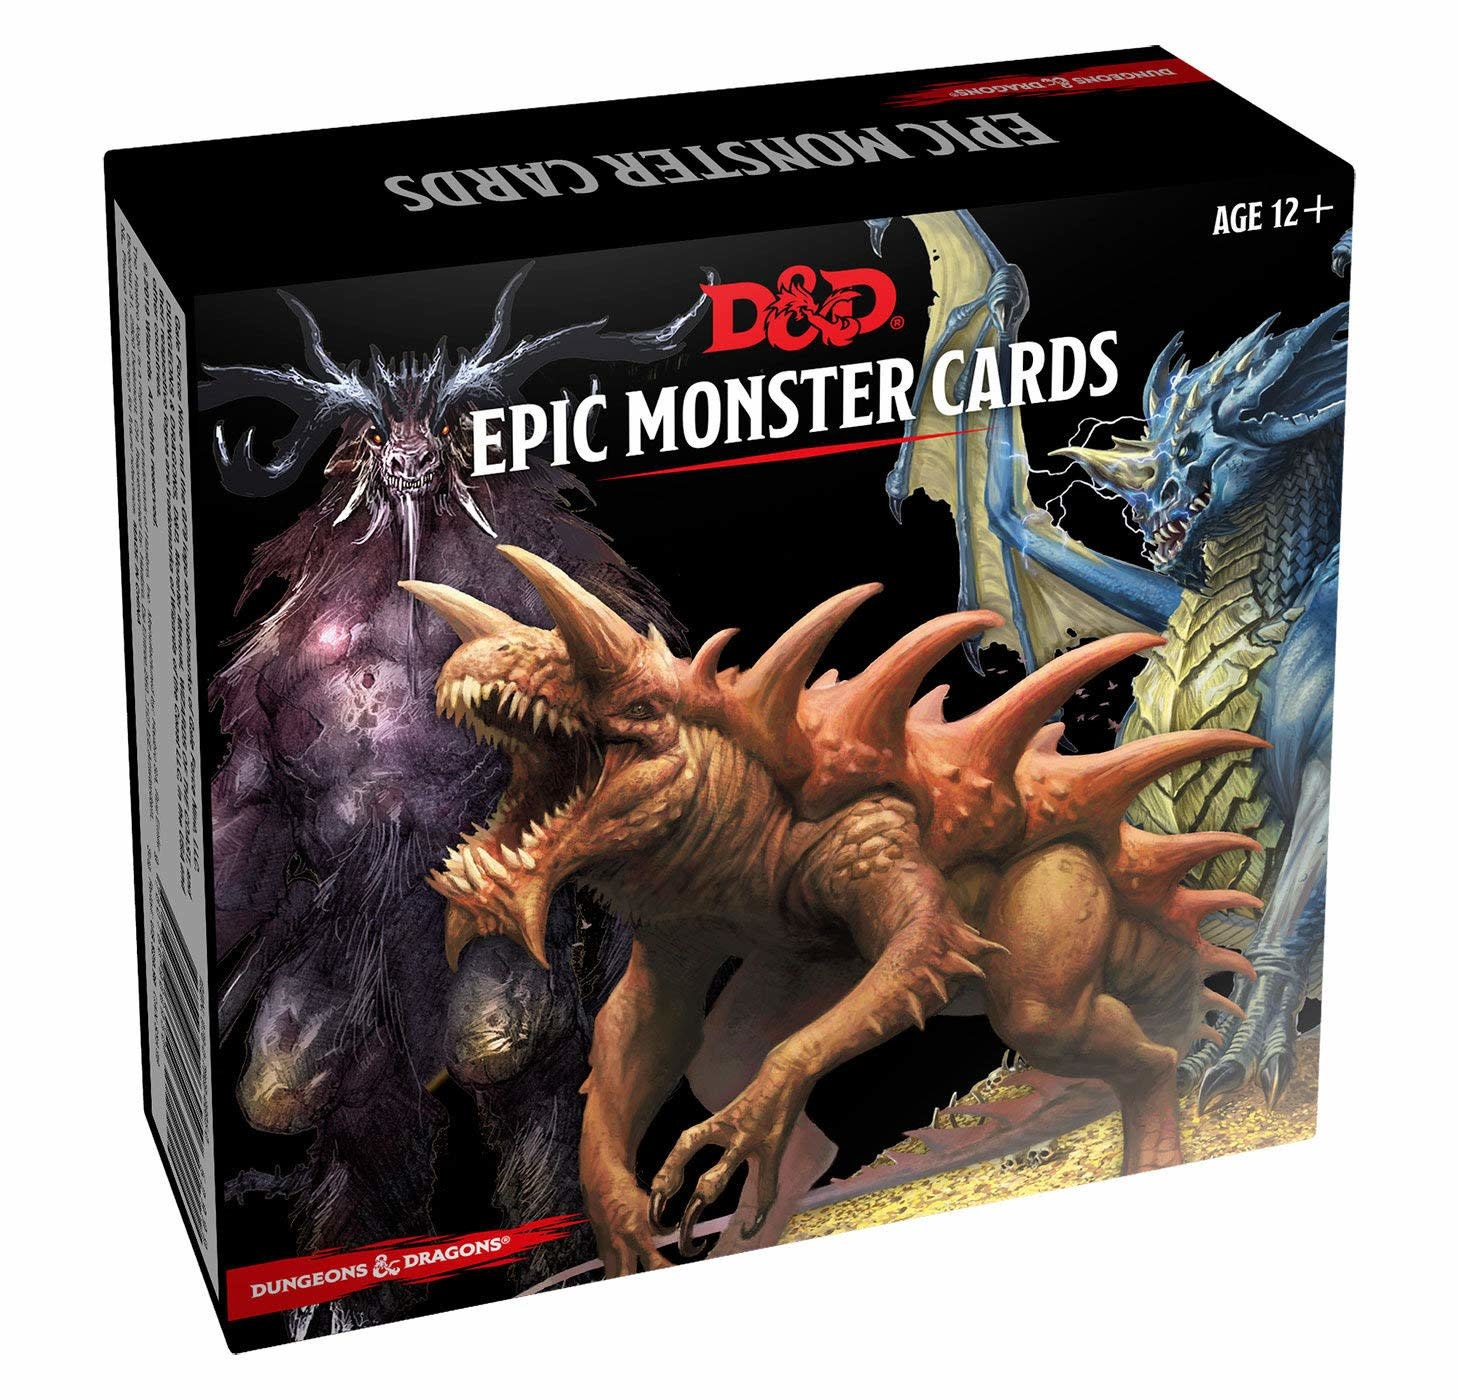 Dungeons & Dragons Epic Monster Cards